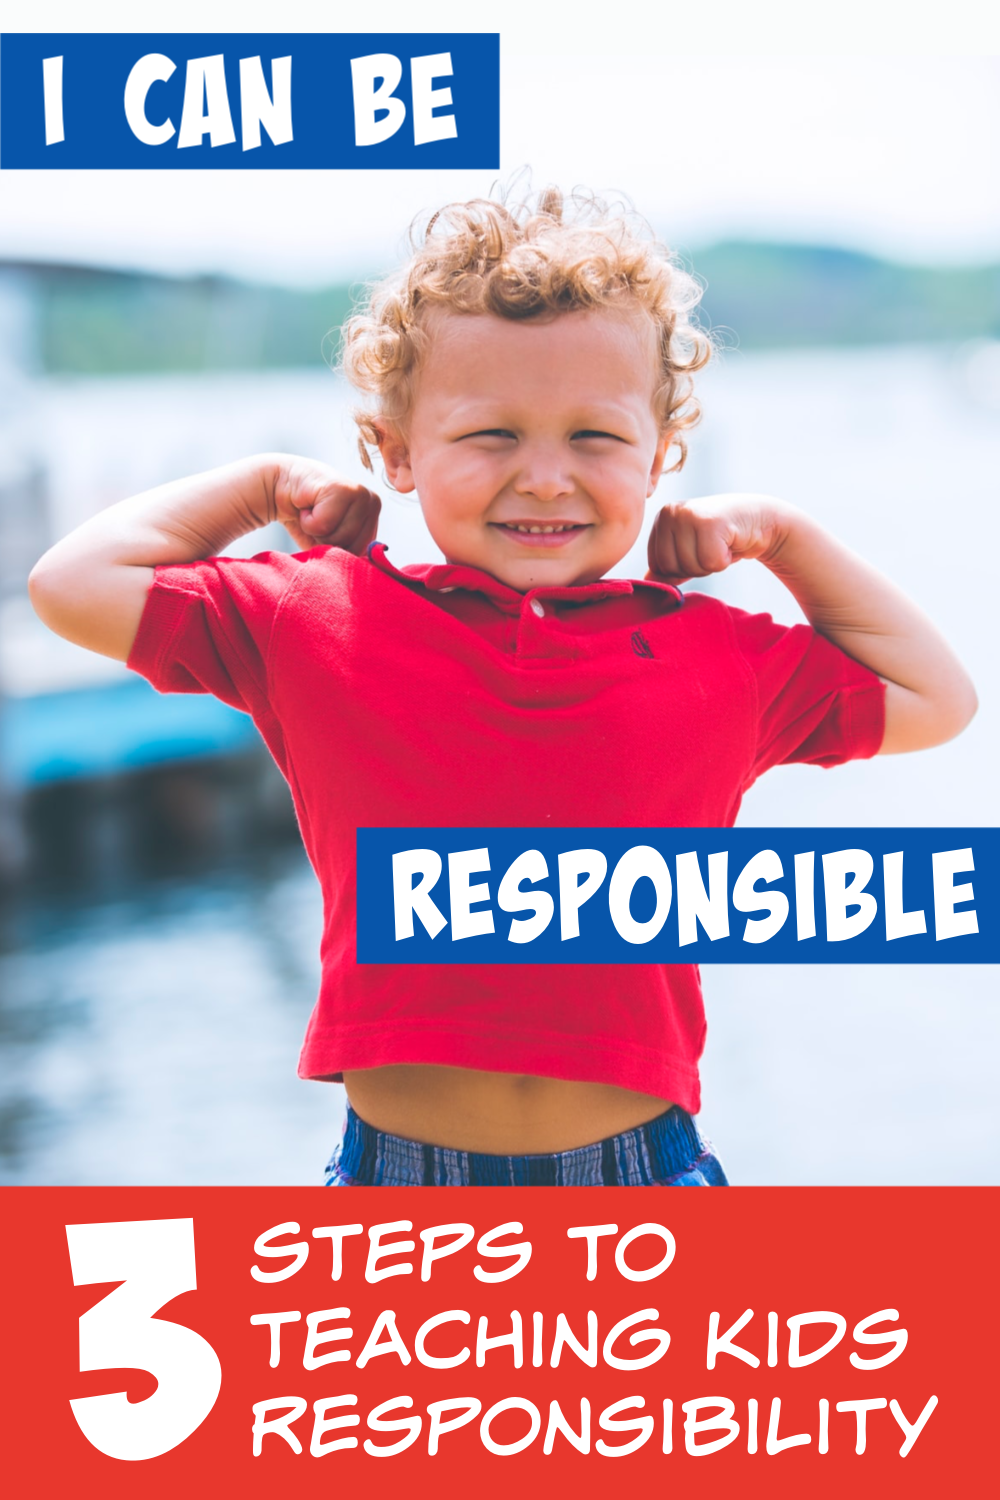 3 steps to teaching kids responsibility